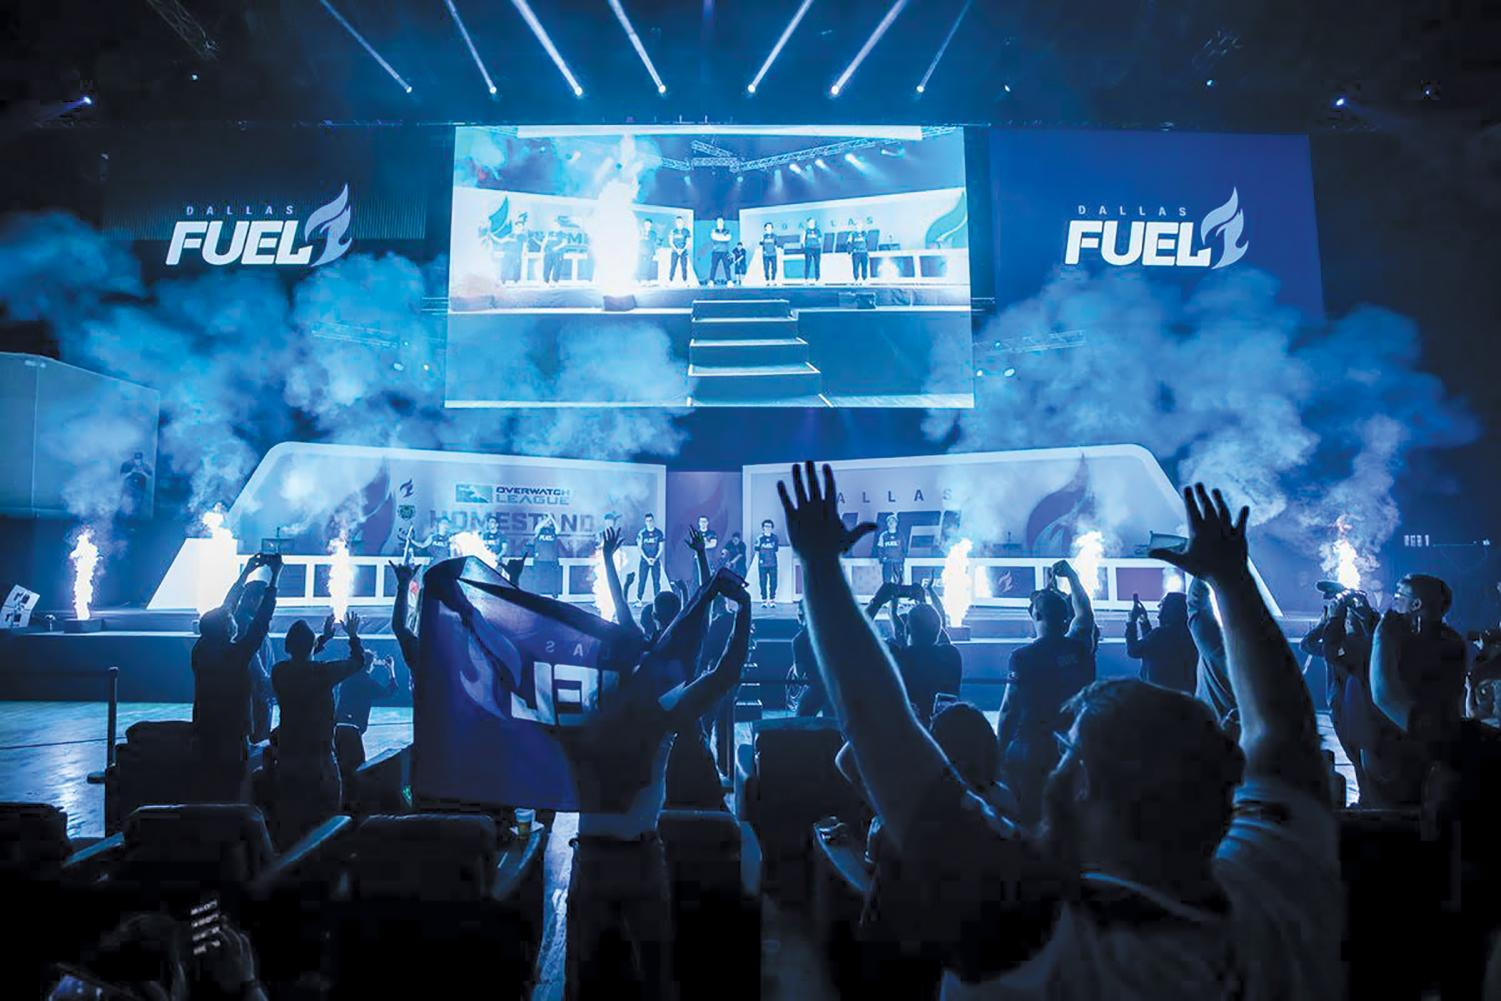 Esports is quickly becoming one of the most popular competitive events on all platforms.